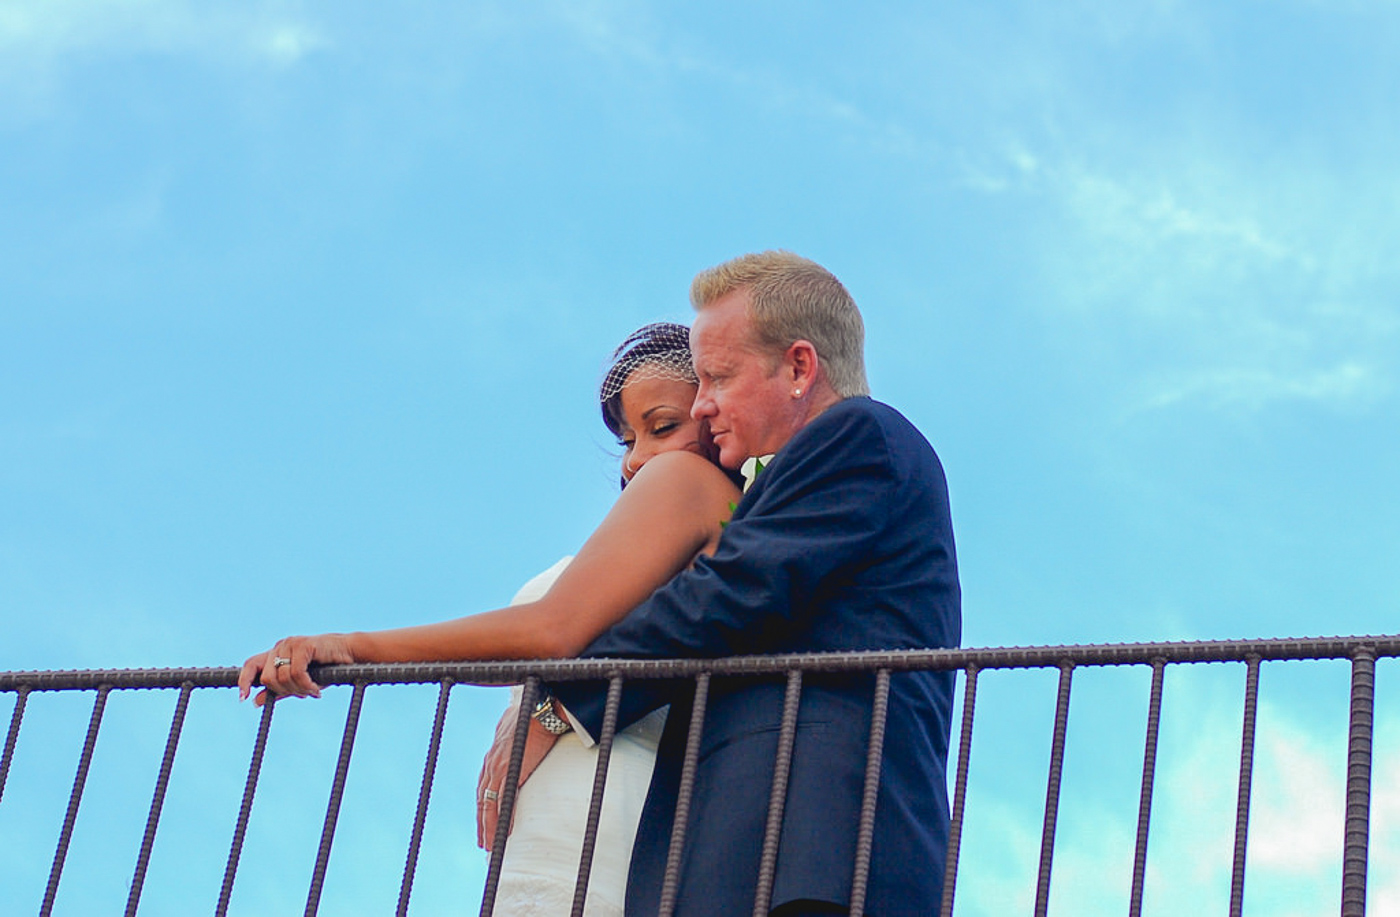 Bride and groom looking over railing at orang county mining co